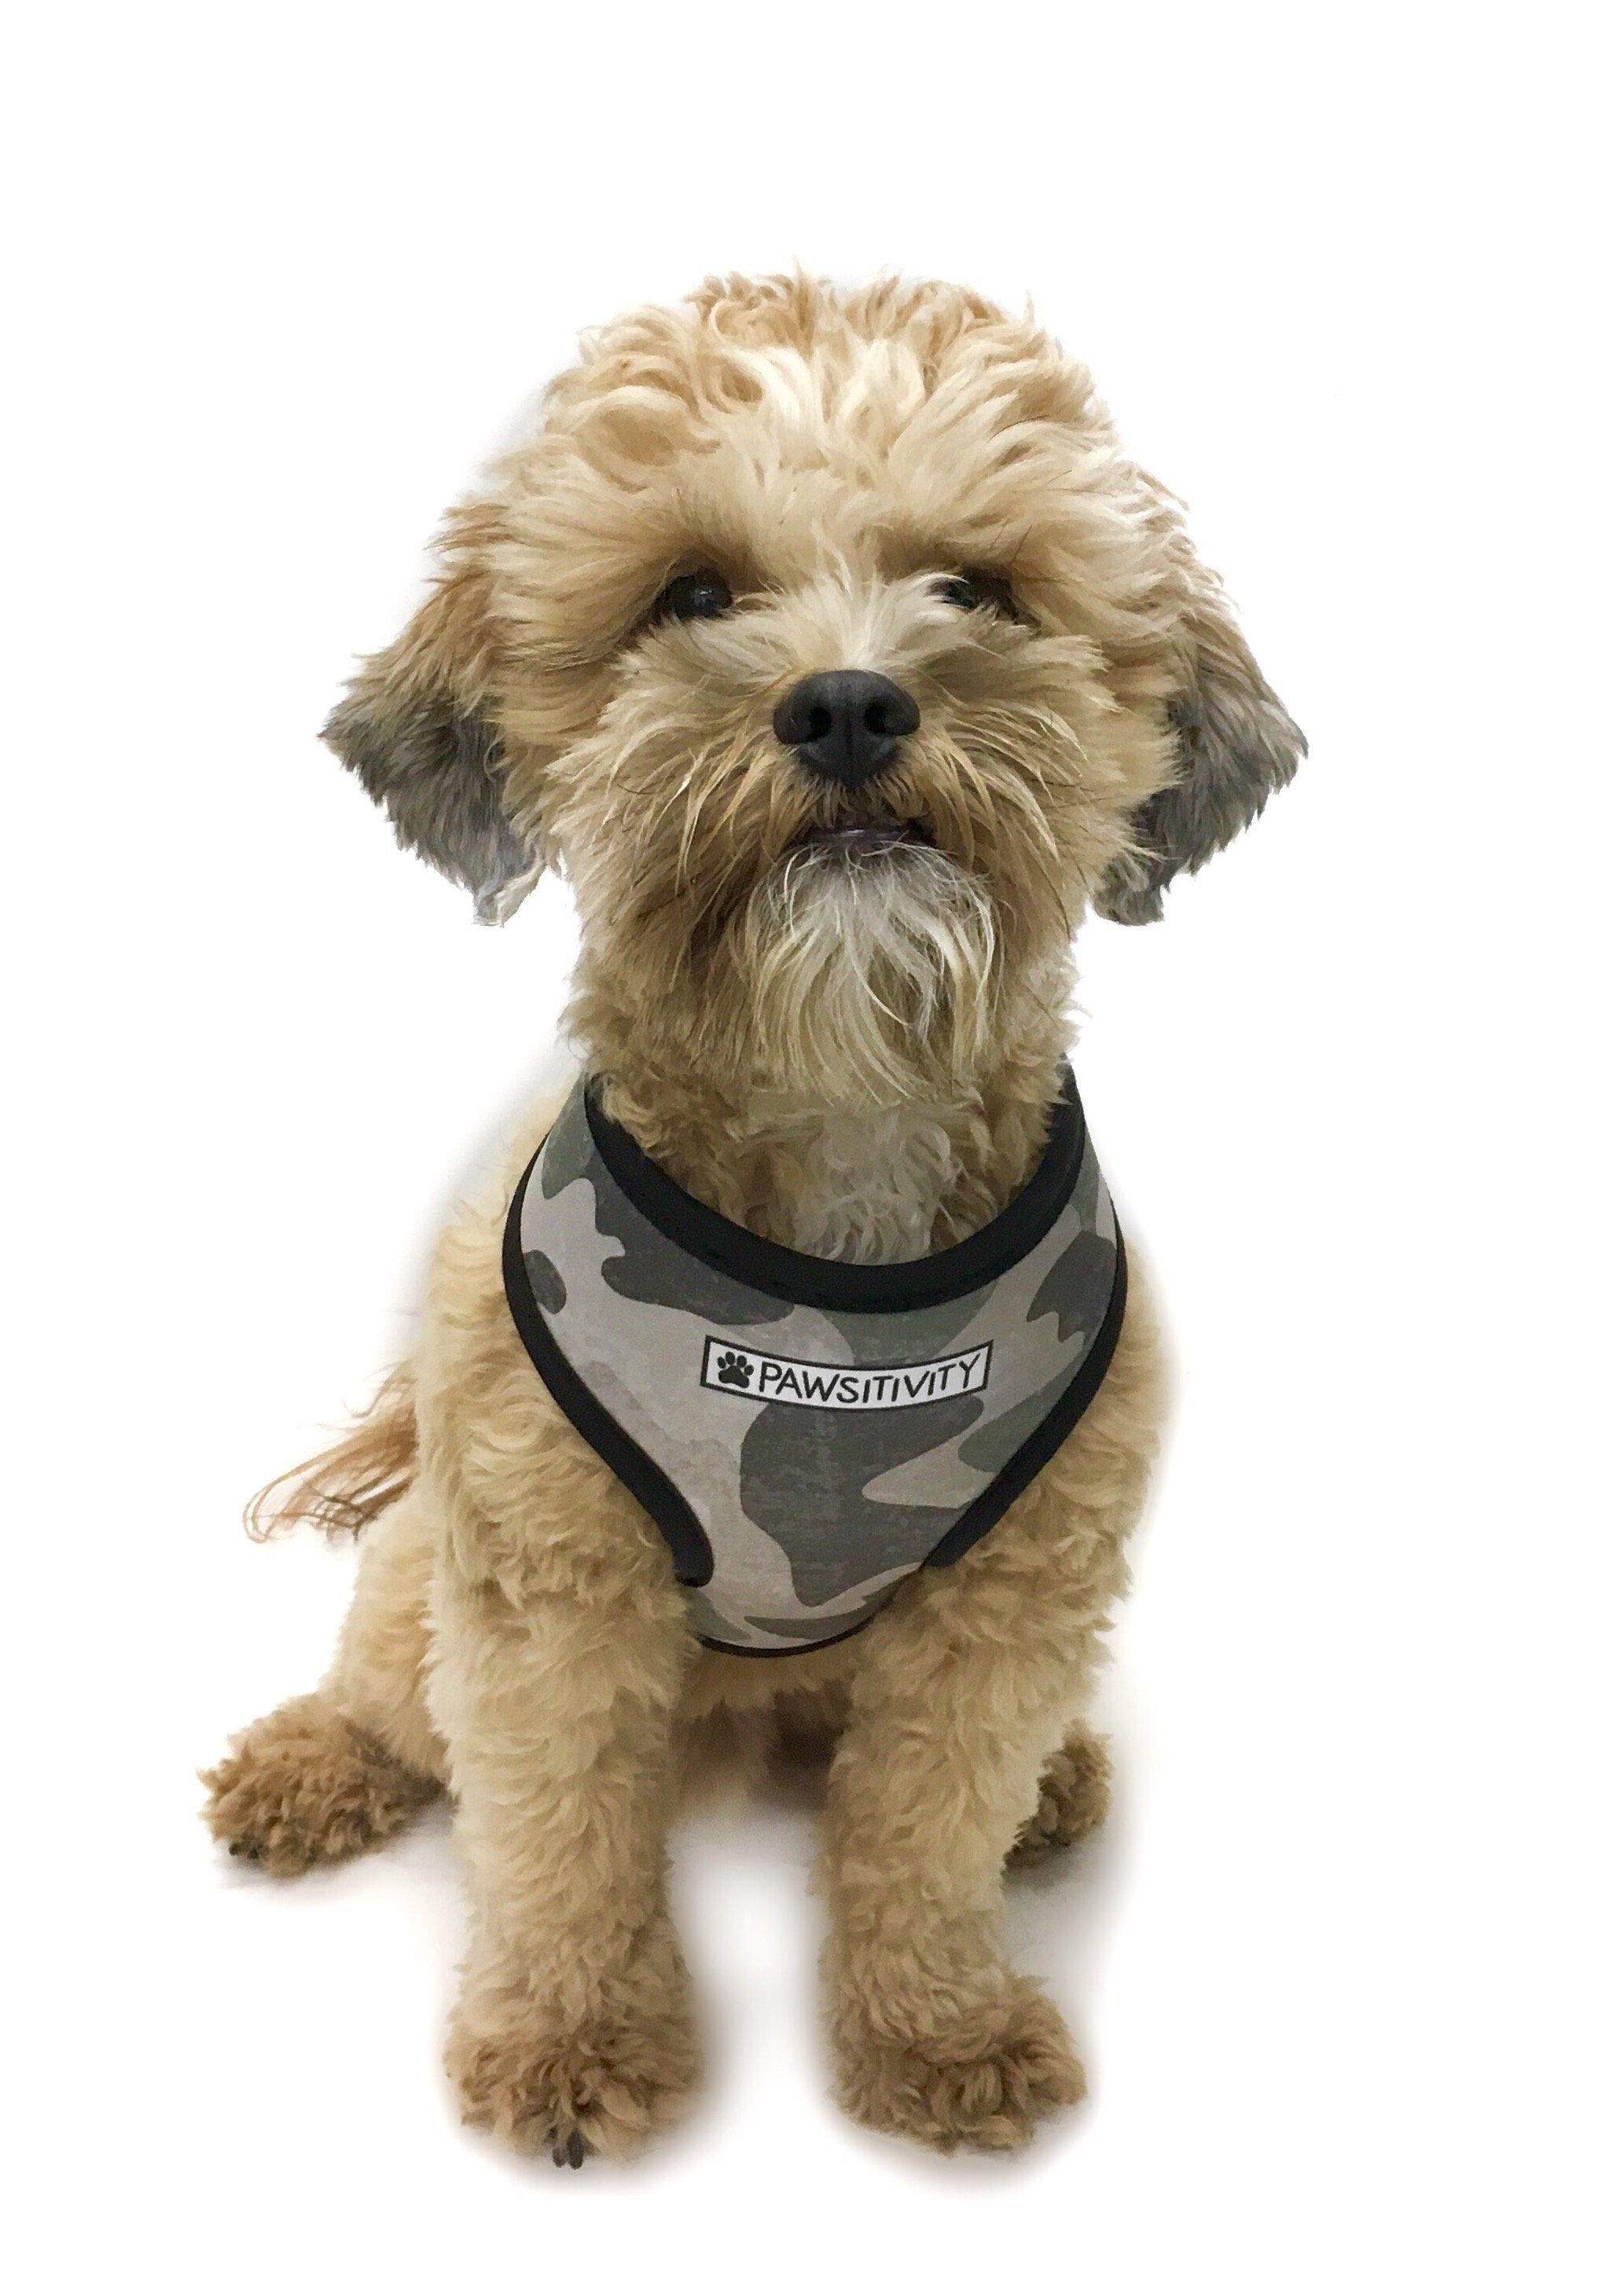 Pawsitivity Reversible Harness - Camo & Black Marble